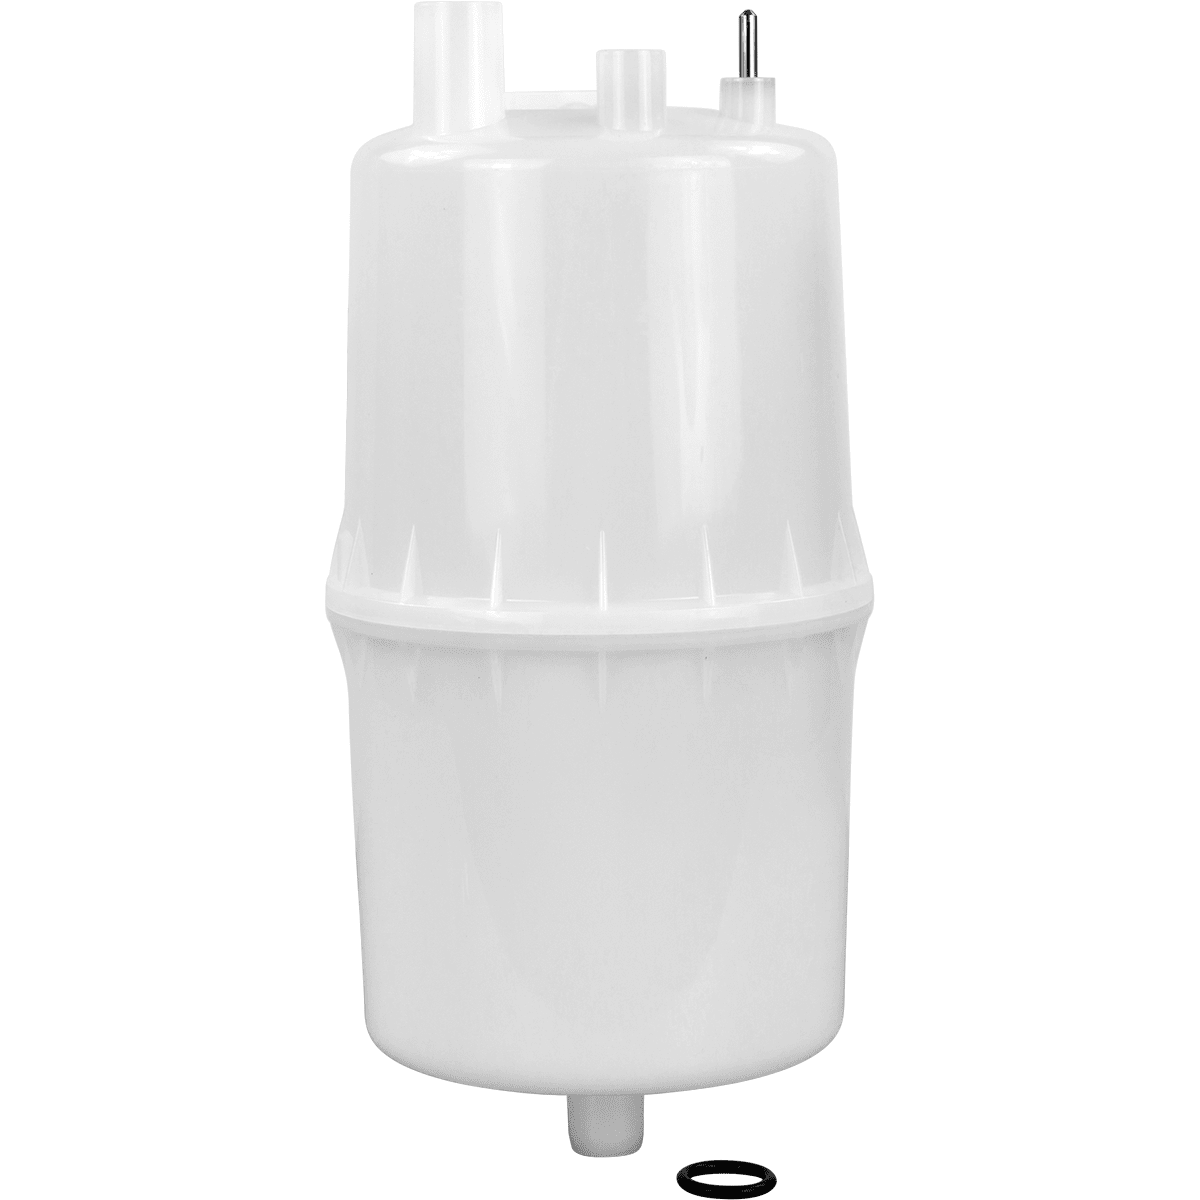 Aprilaire 202a Steam Humidifier Cylinder (fits Nortec® 202)